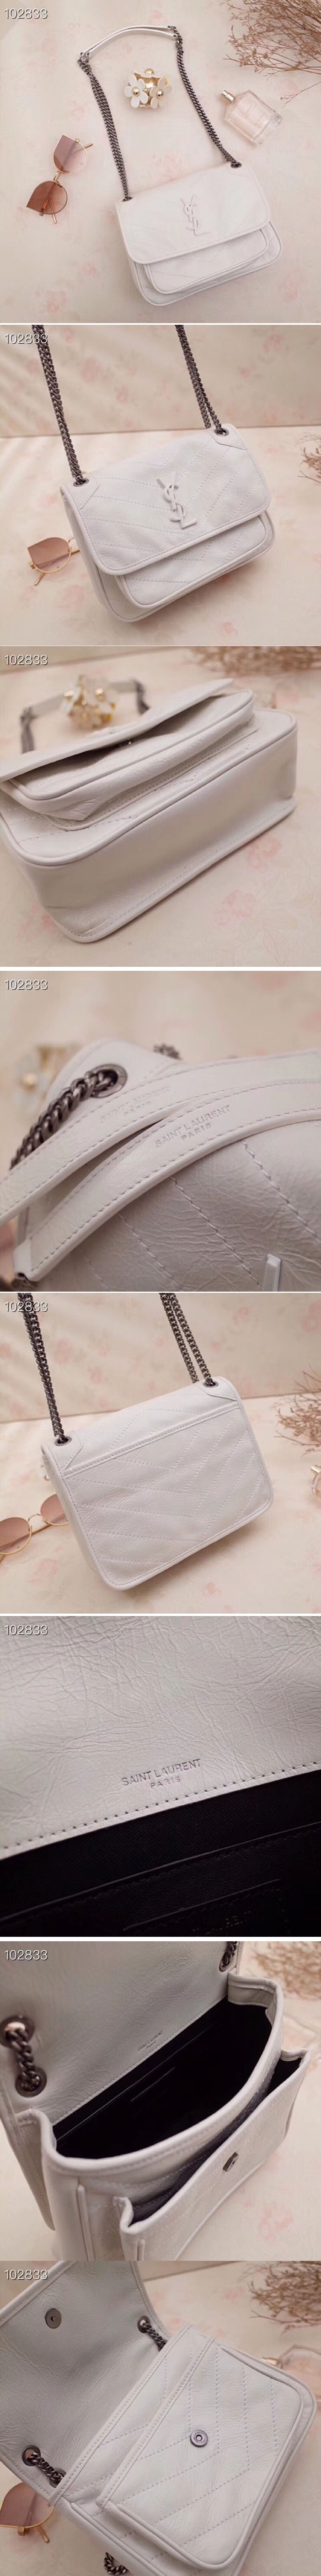 Replica YSL Saint Laurent Niki Baby In Crinkled Vintage Leather 533037 White